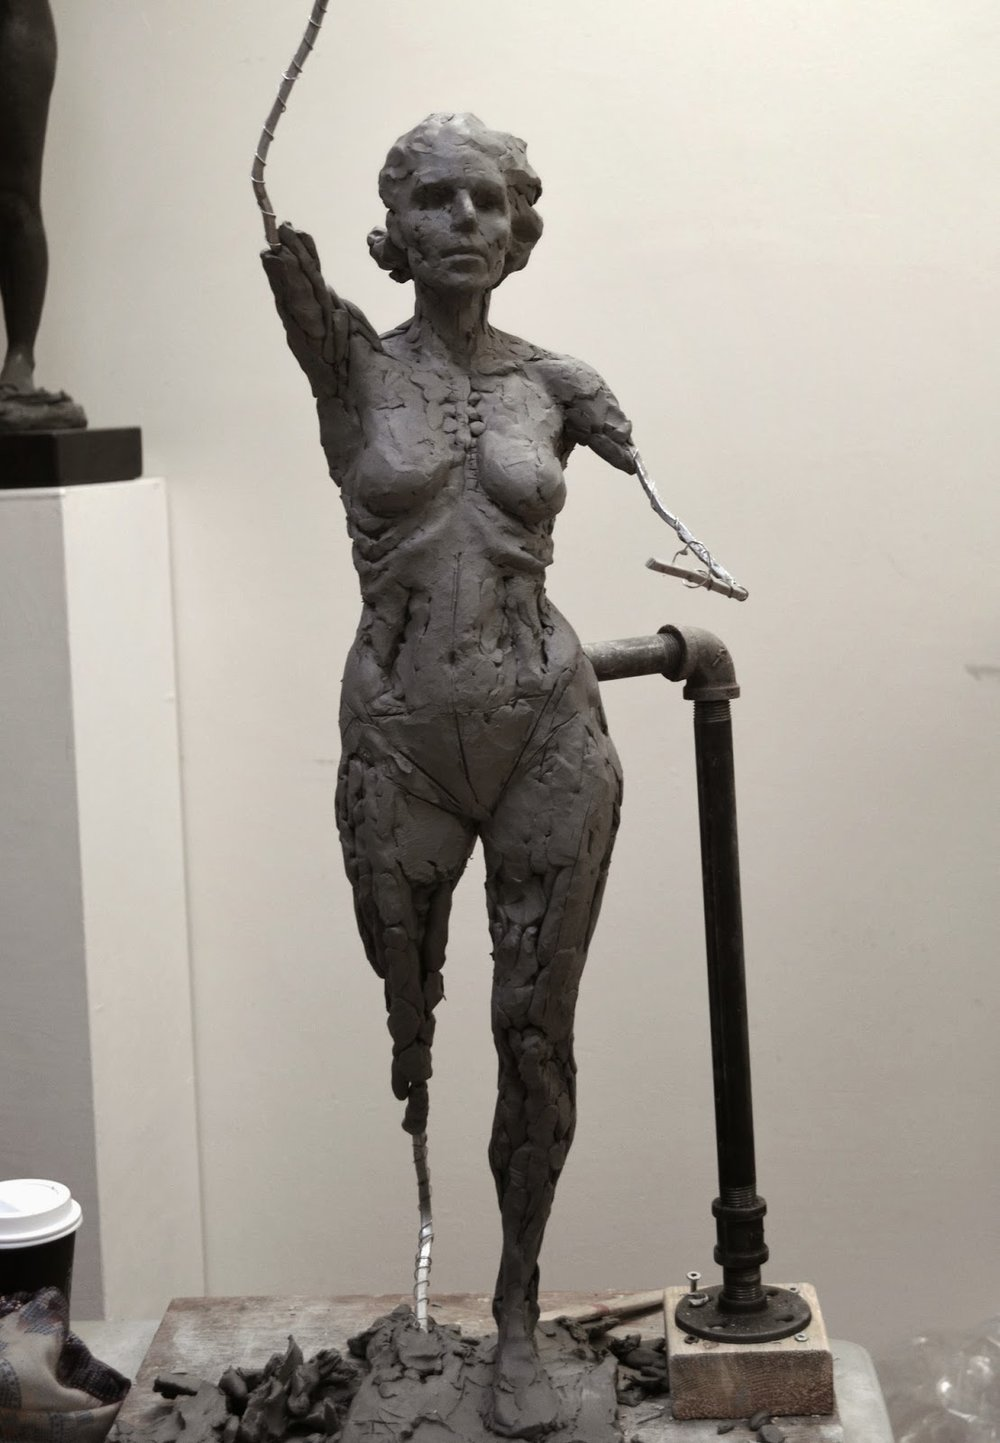 Keep Reading: Sculpting A Female Figure Sculpture in Clay post 4- Spot the  Difference: Gesture